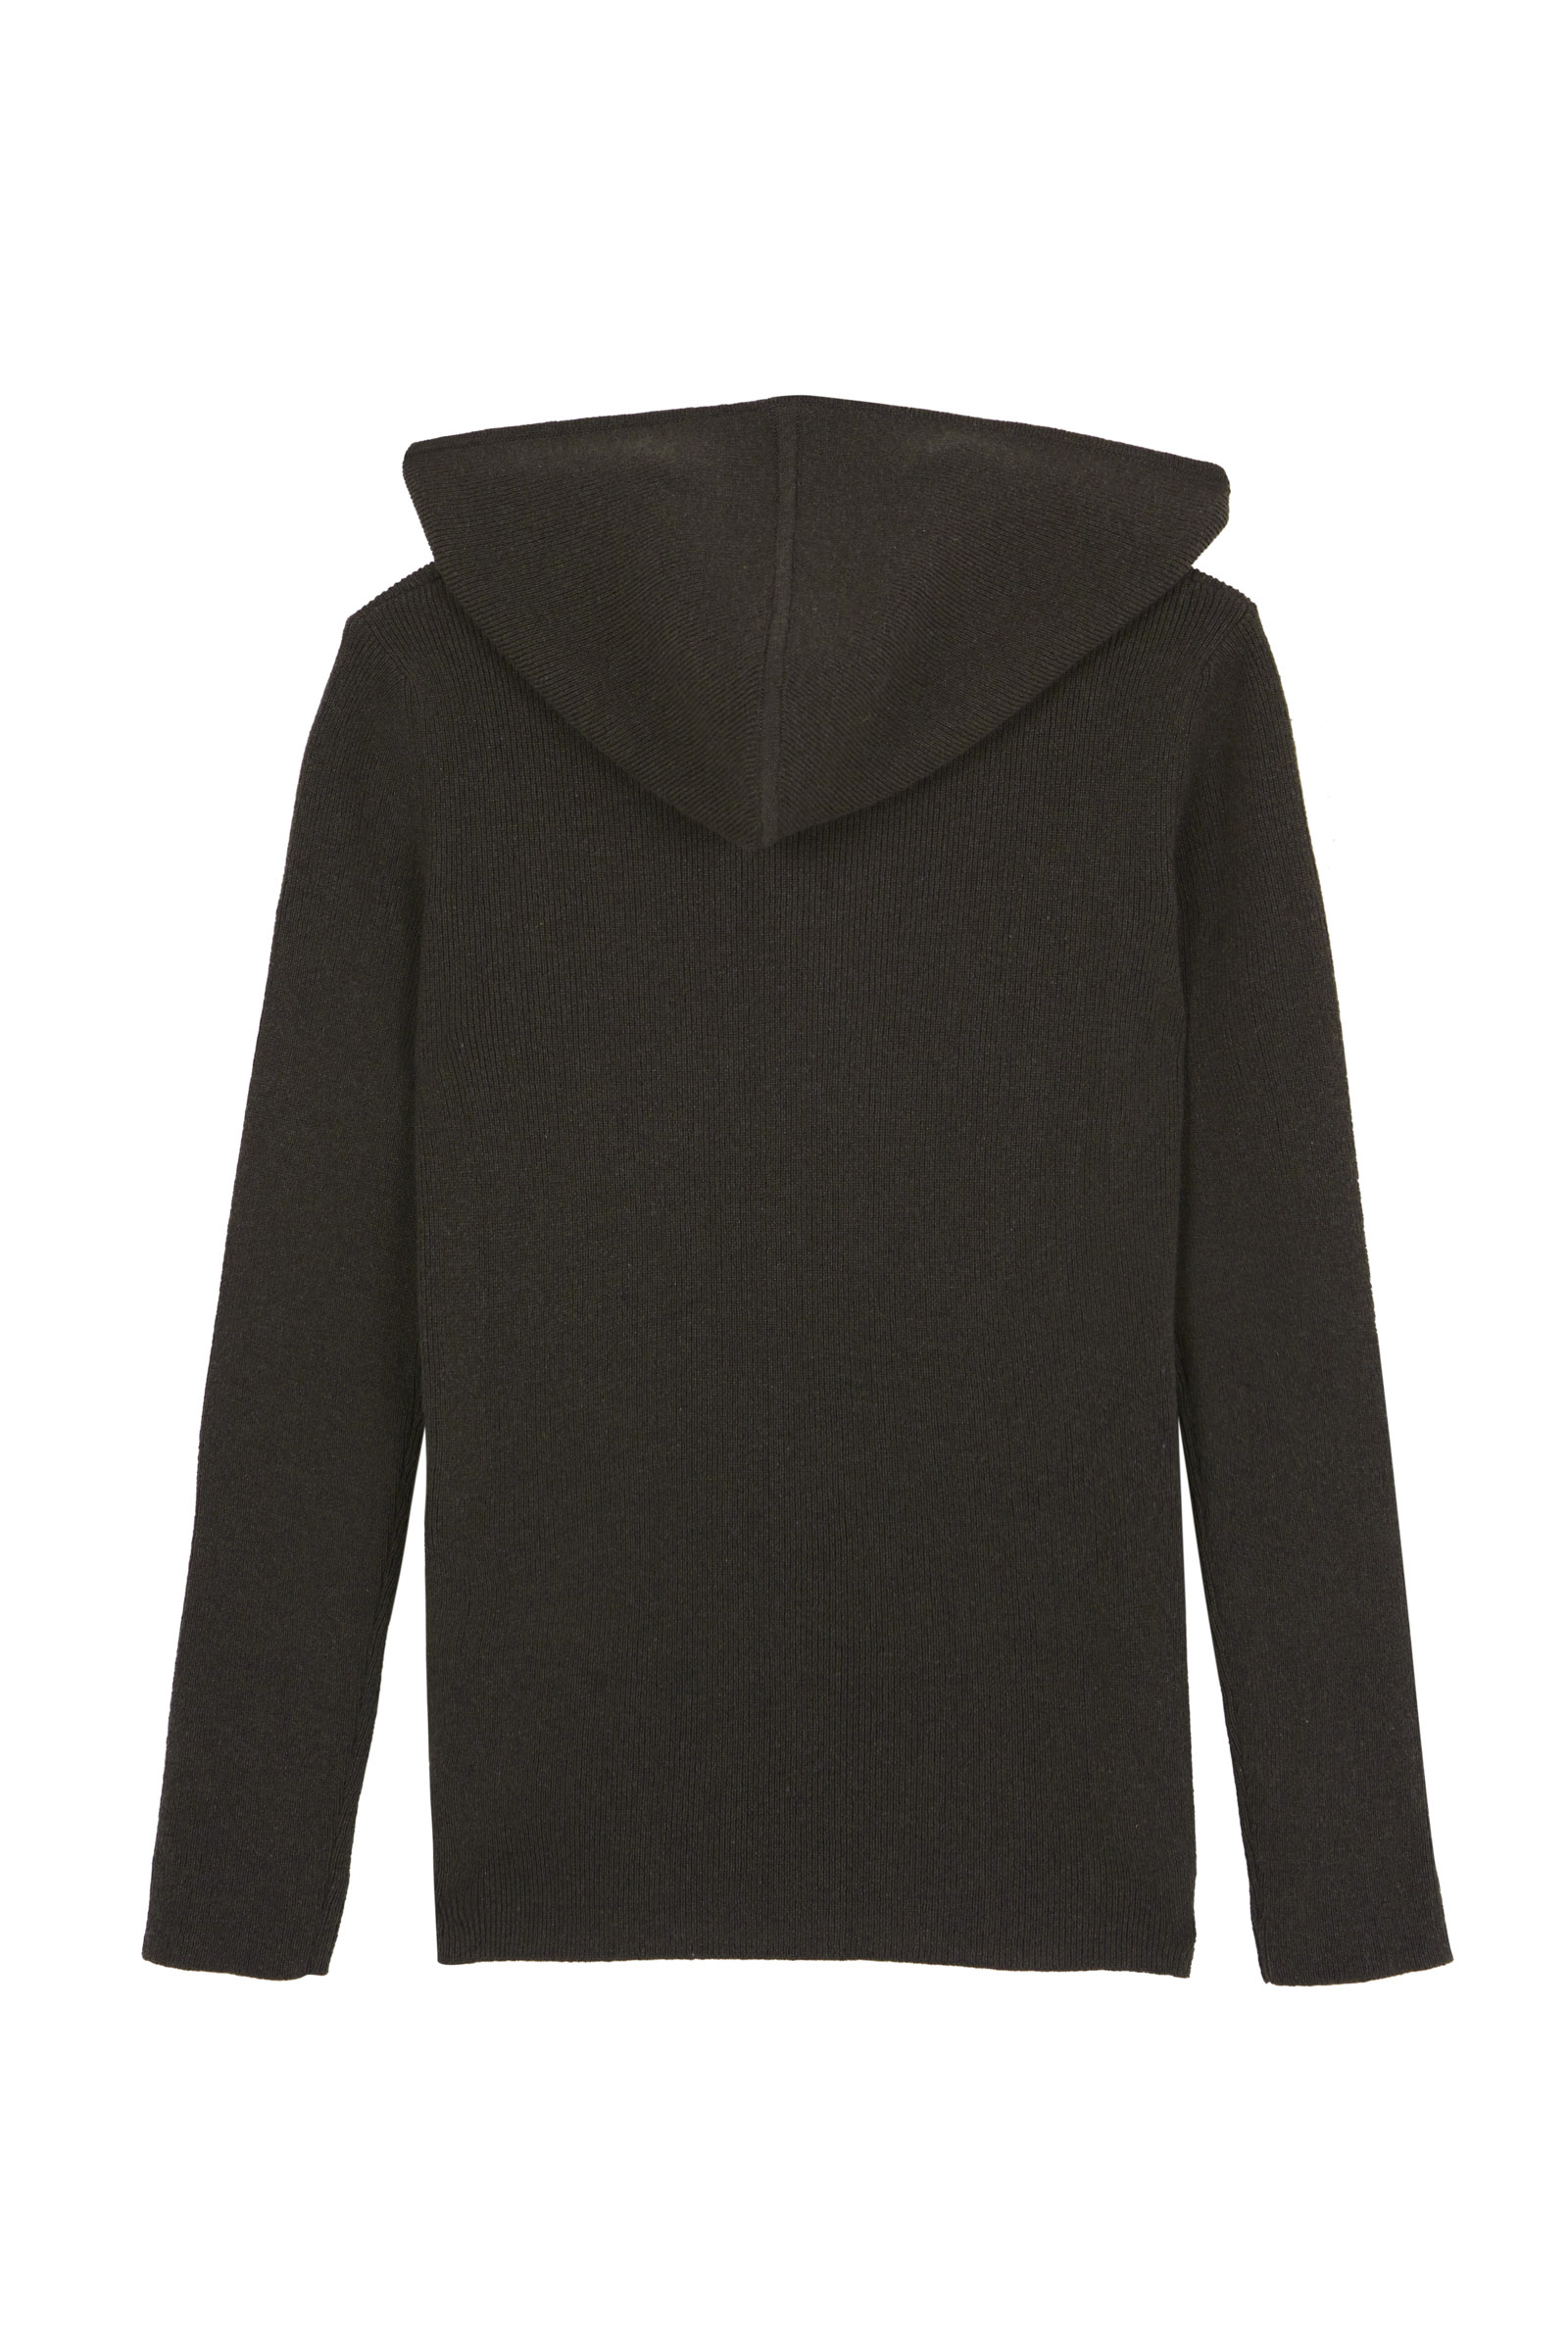 JACQUES, GREEN CASHMERE PULLOVER - Cortana